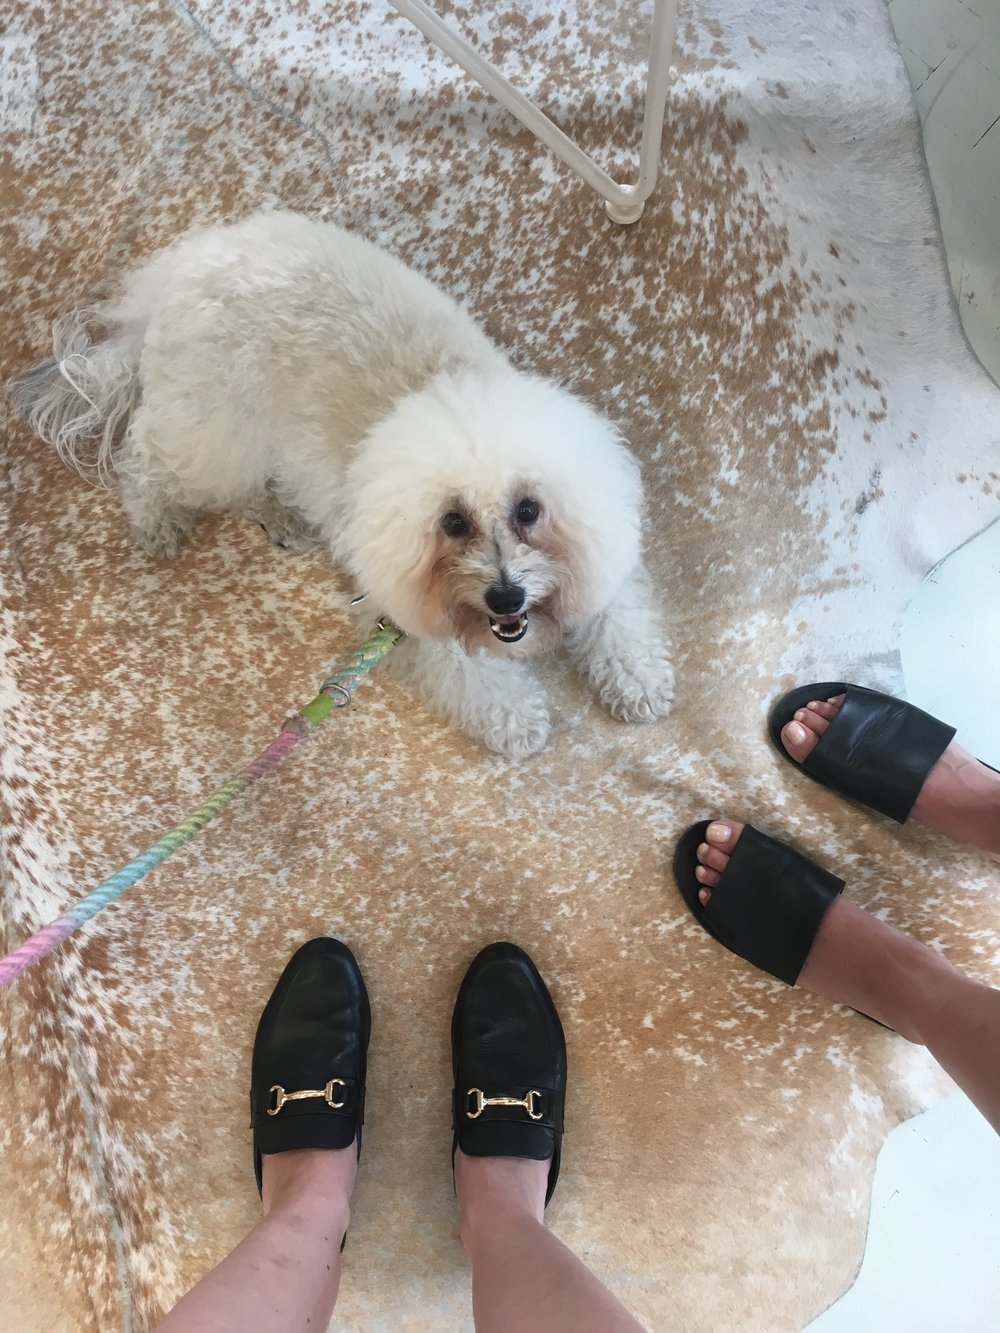 Madewell and Steve Madden shoes with a pretty floor at dog-friendly store by George in Austin, TX | Watson & Walls